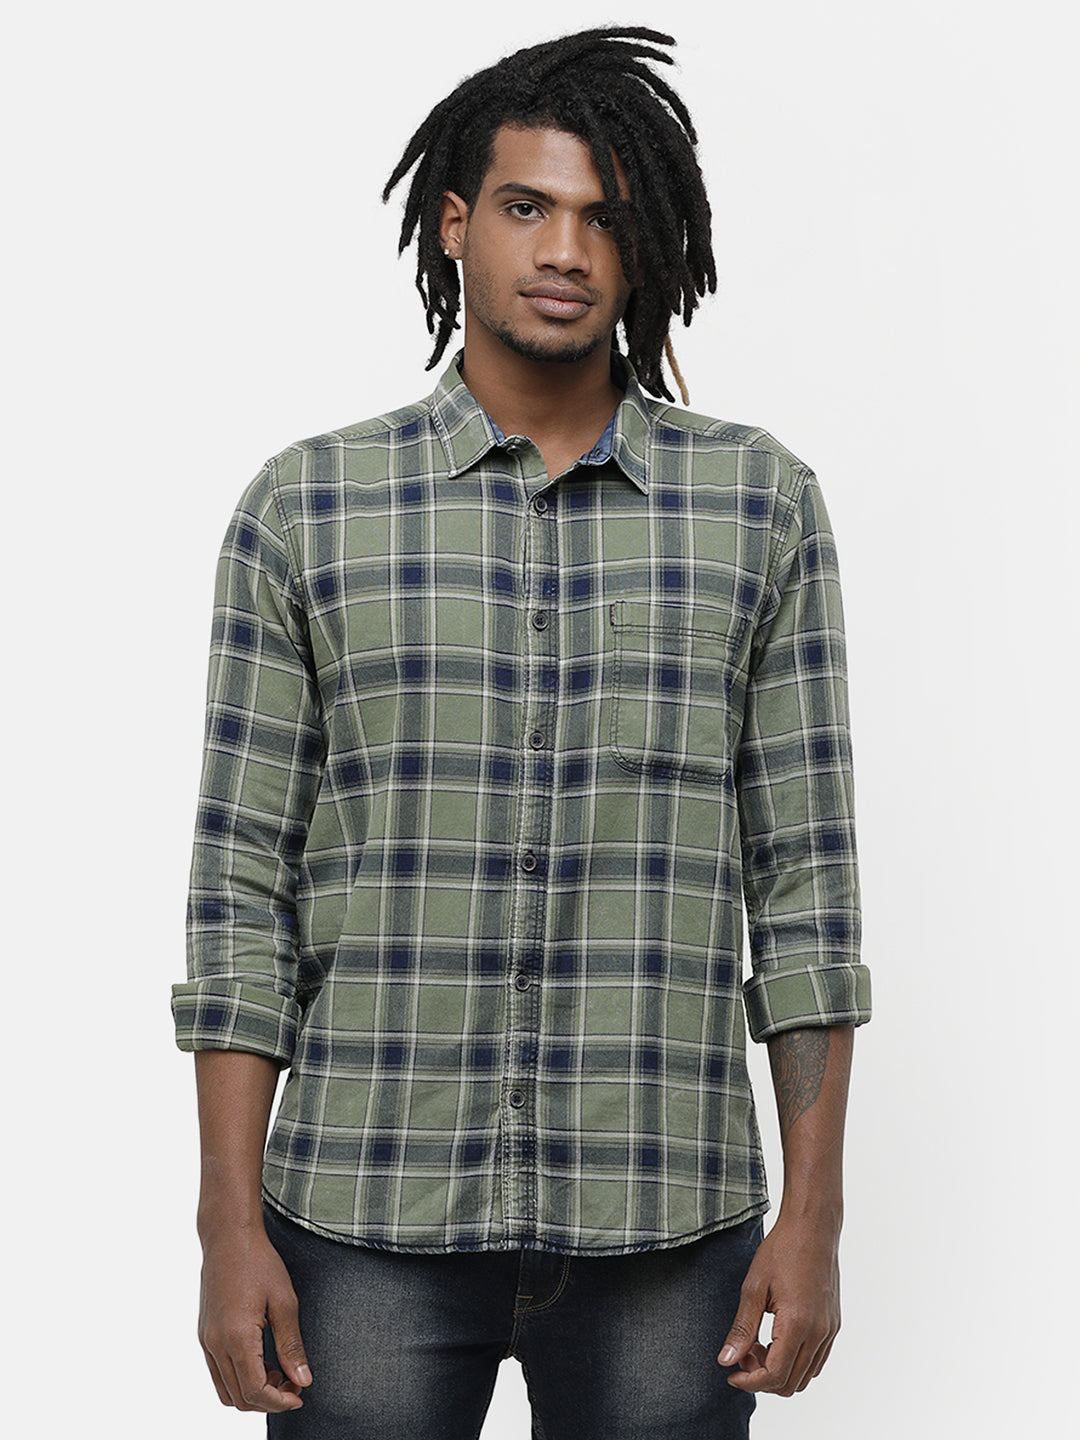 Men's Light Green checks full sleeve casual shirt